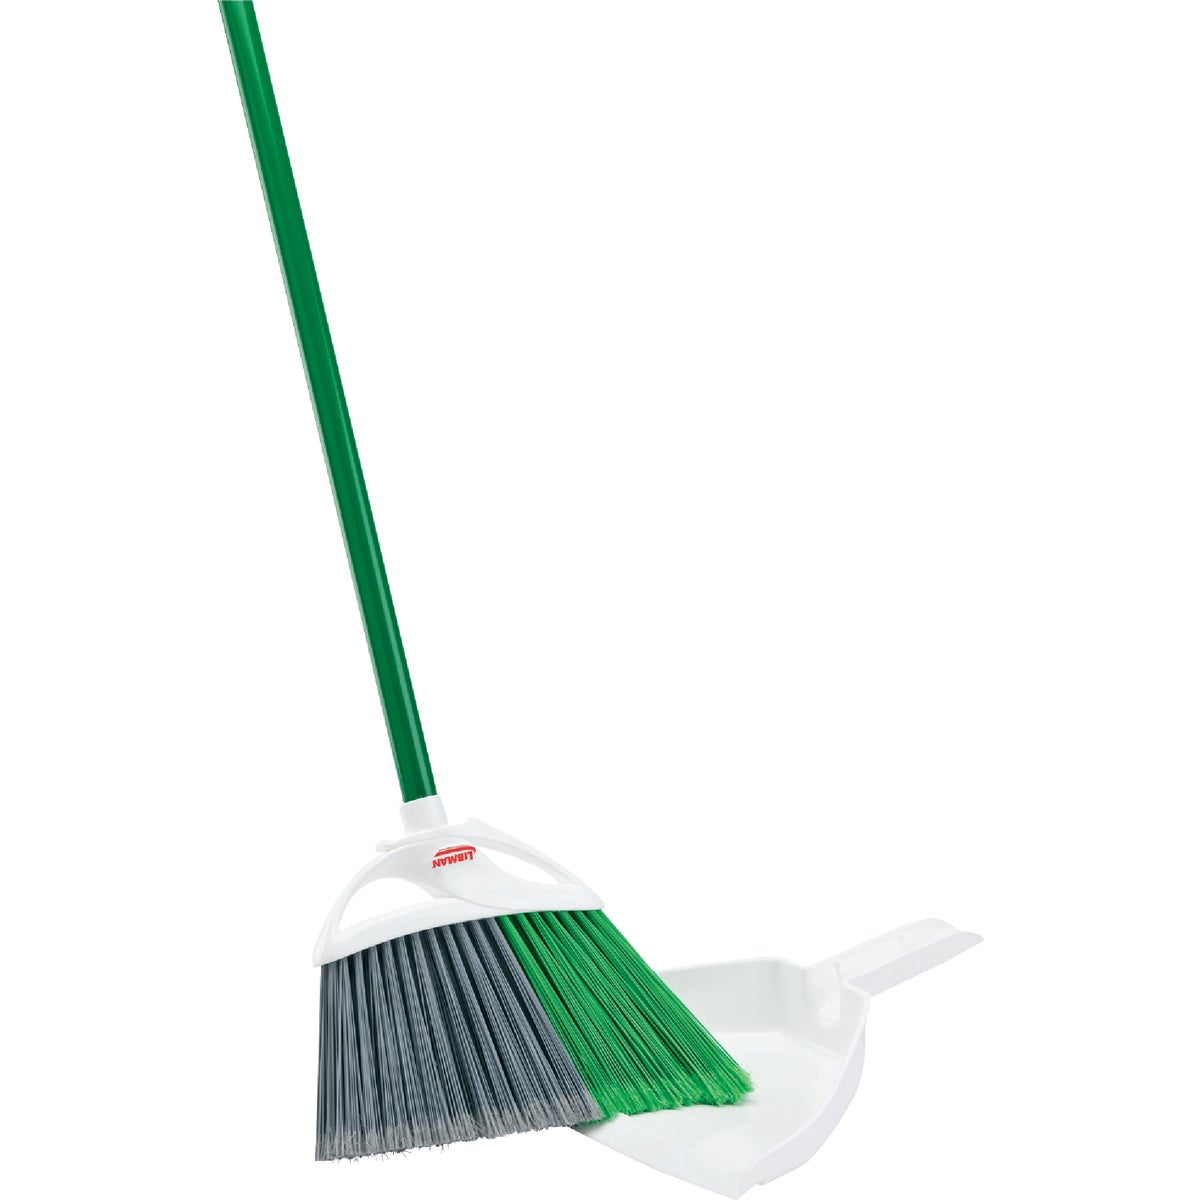 ANGLE BROOM W/DUSTPAN - 206 by The Libman Company